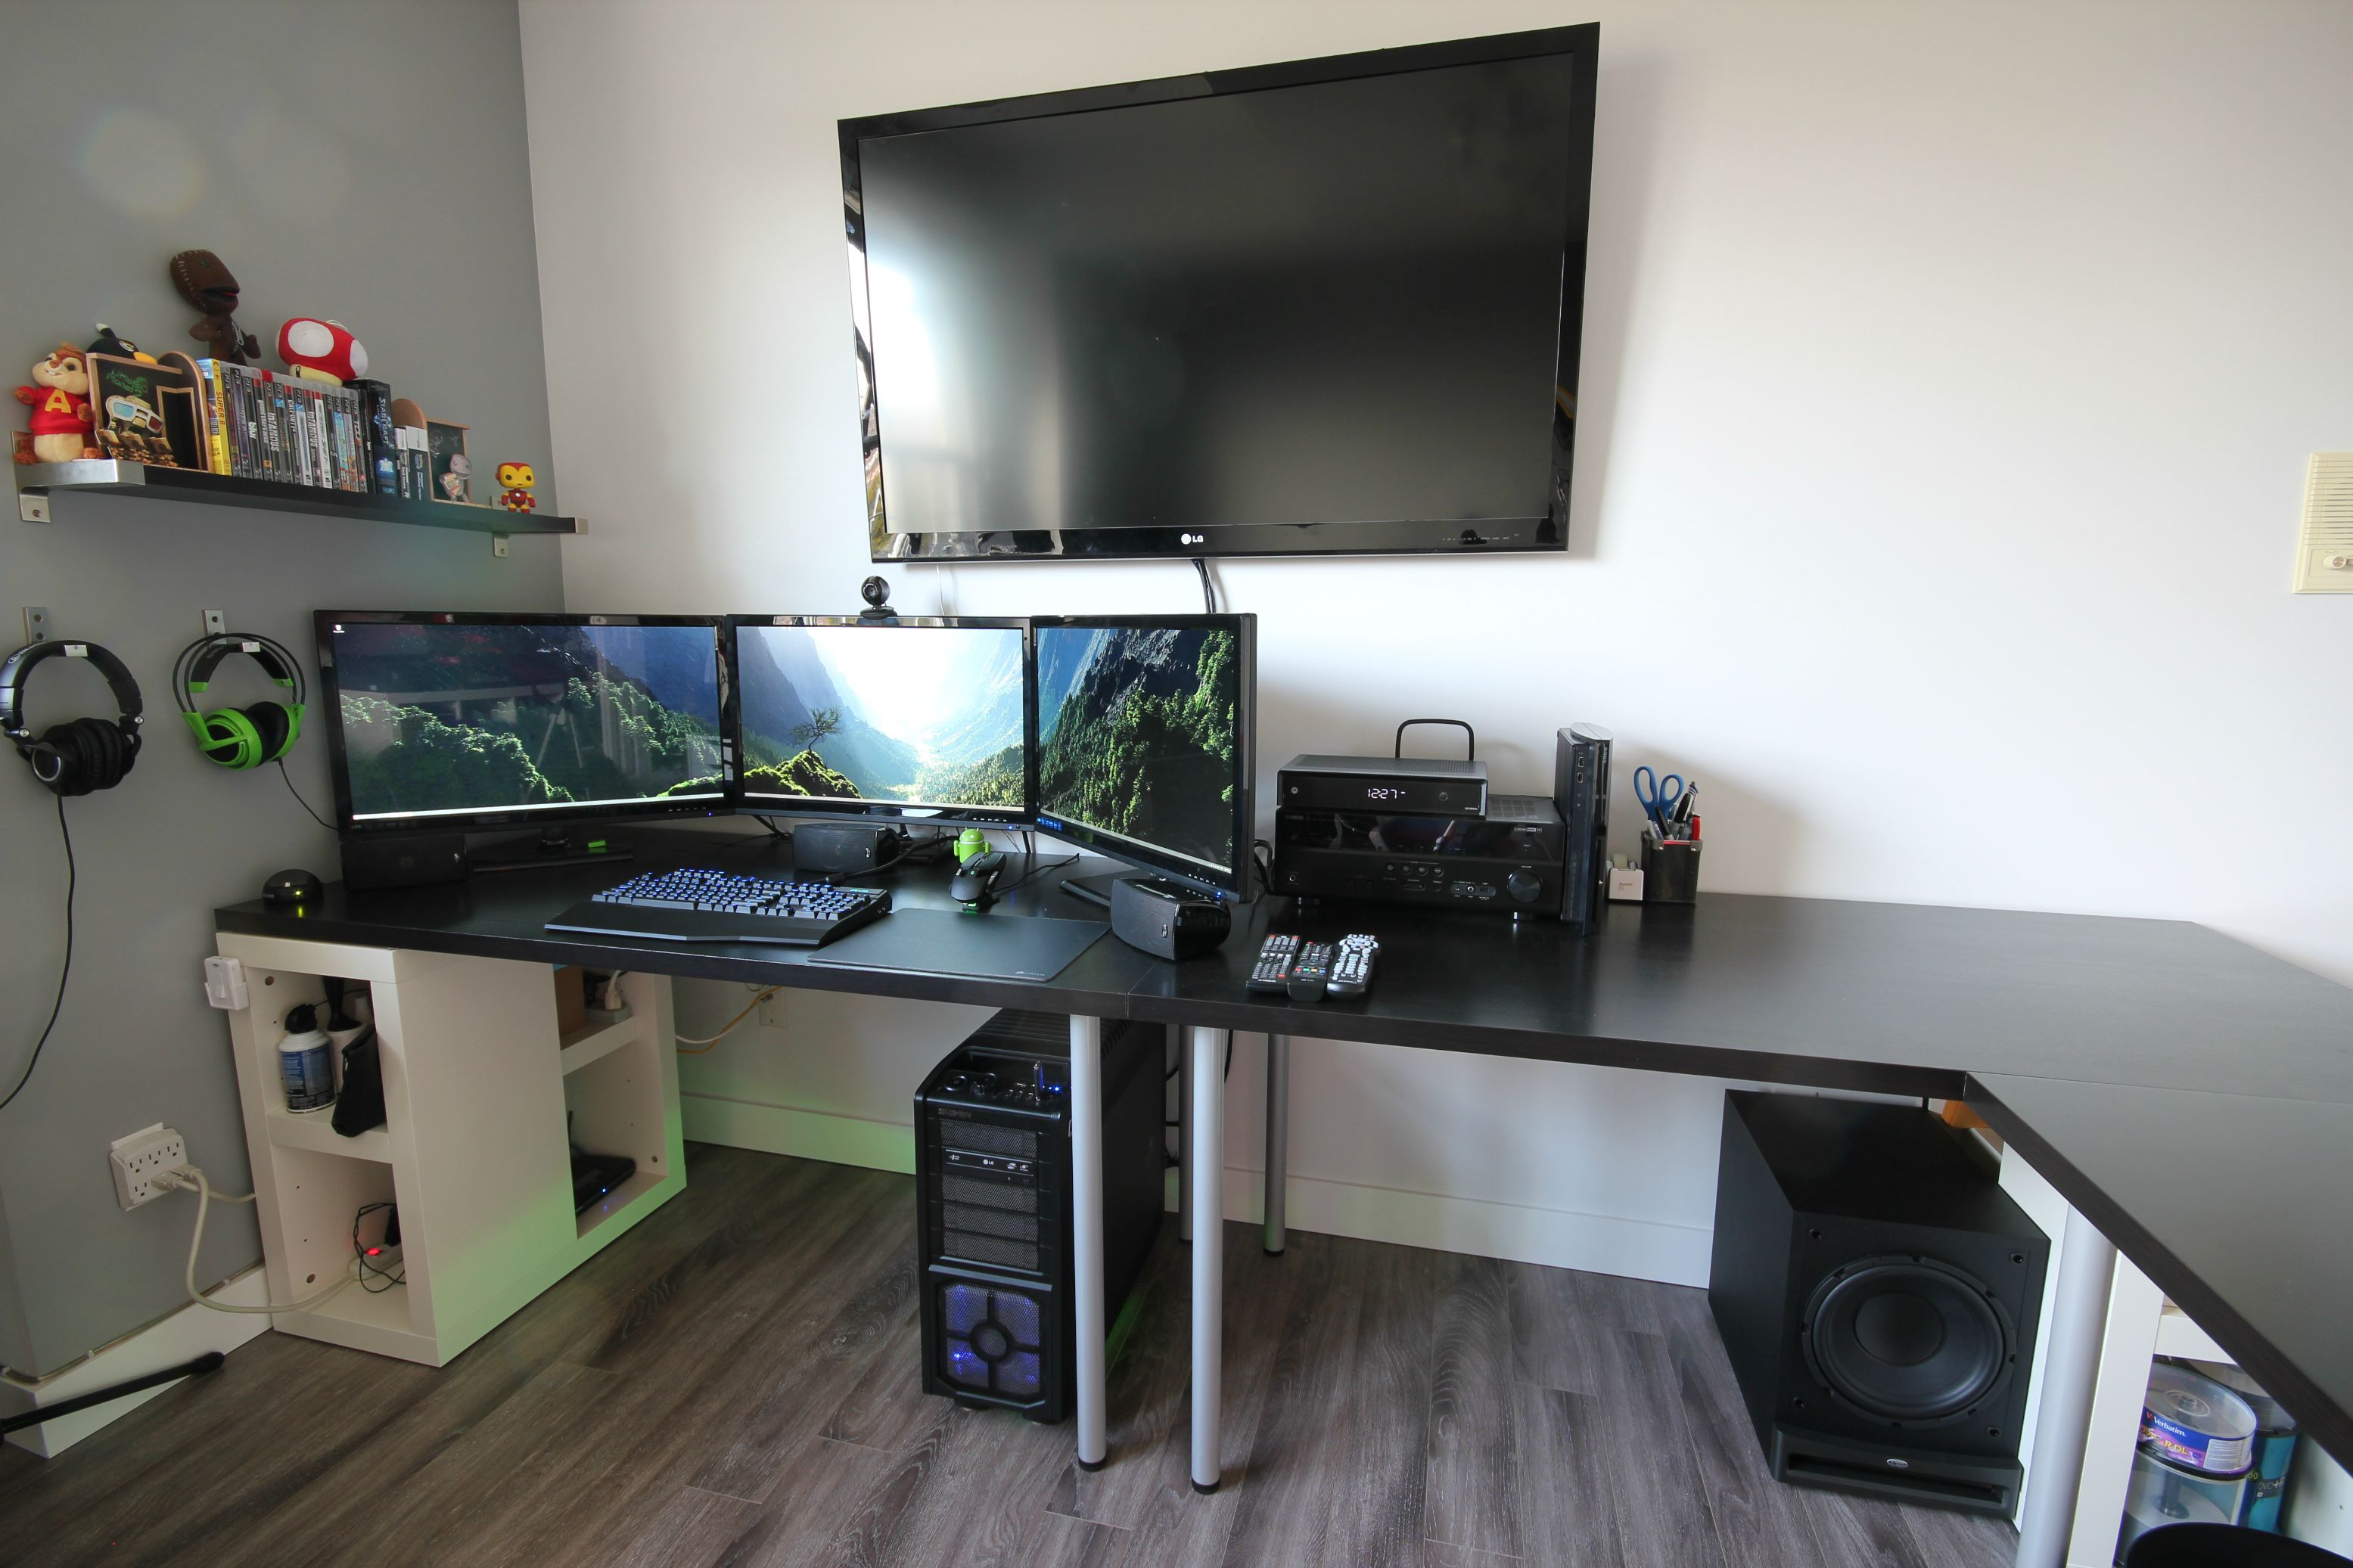 Cool puter Setups and Gaming Setups